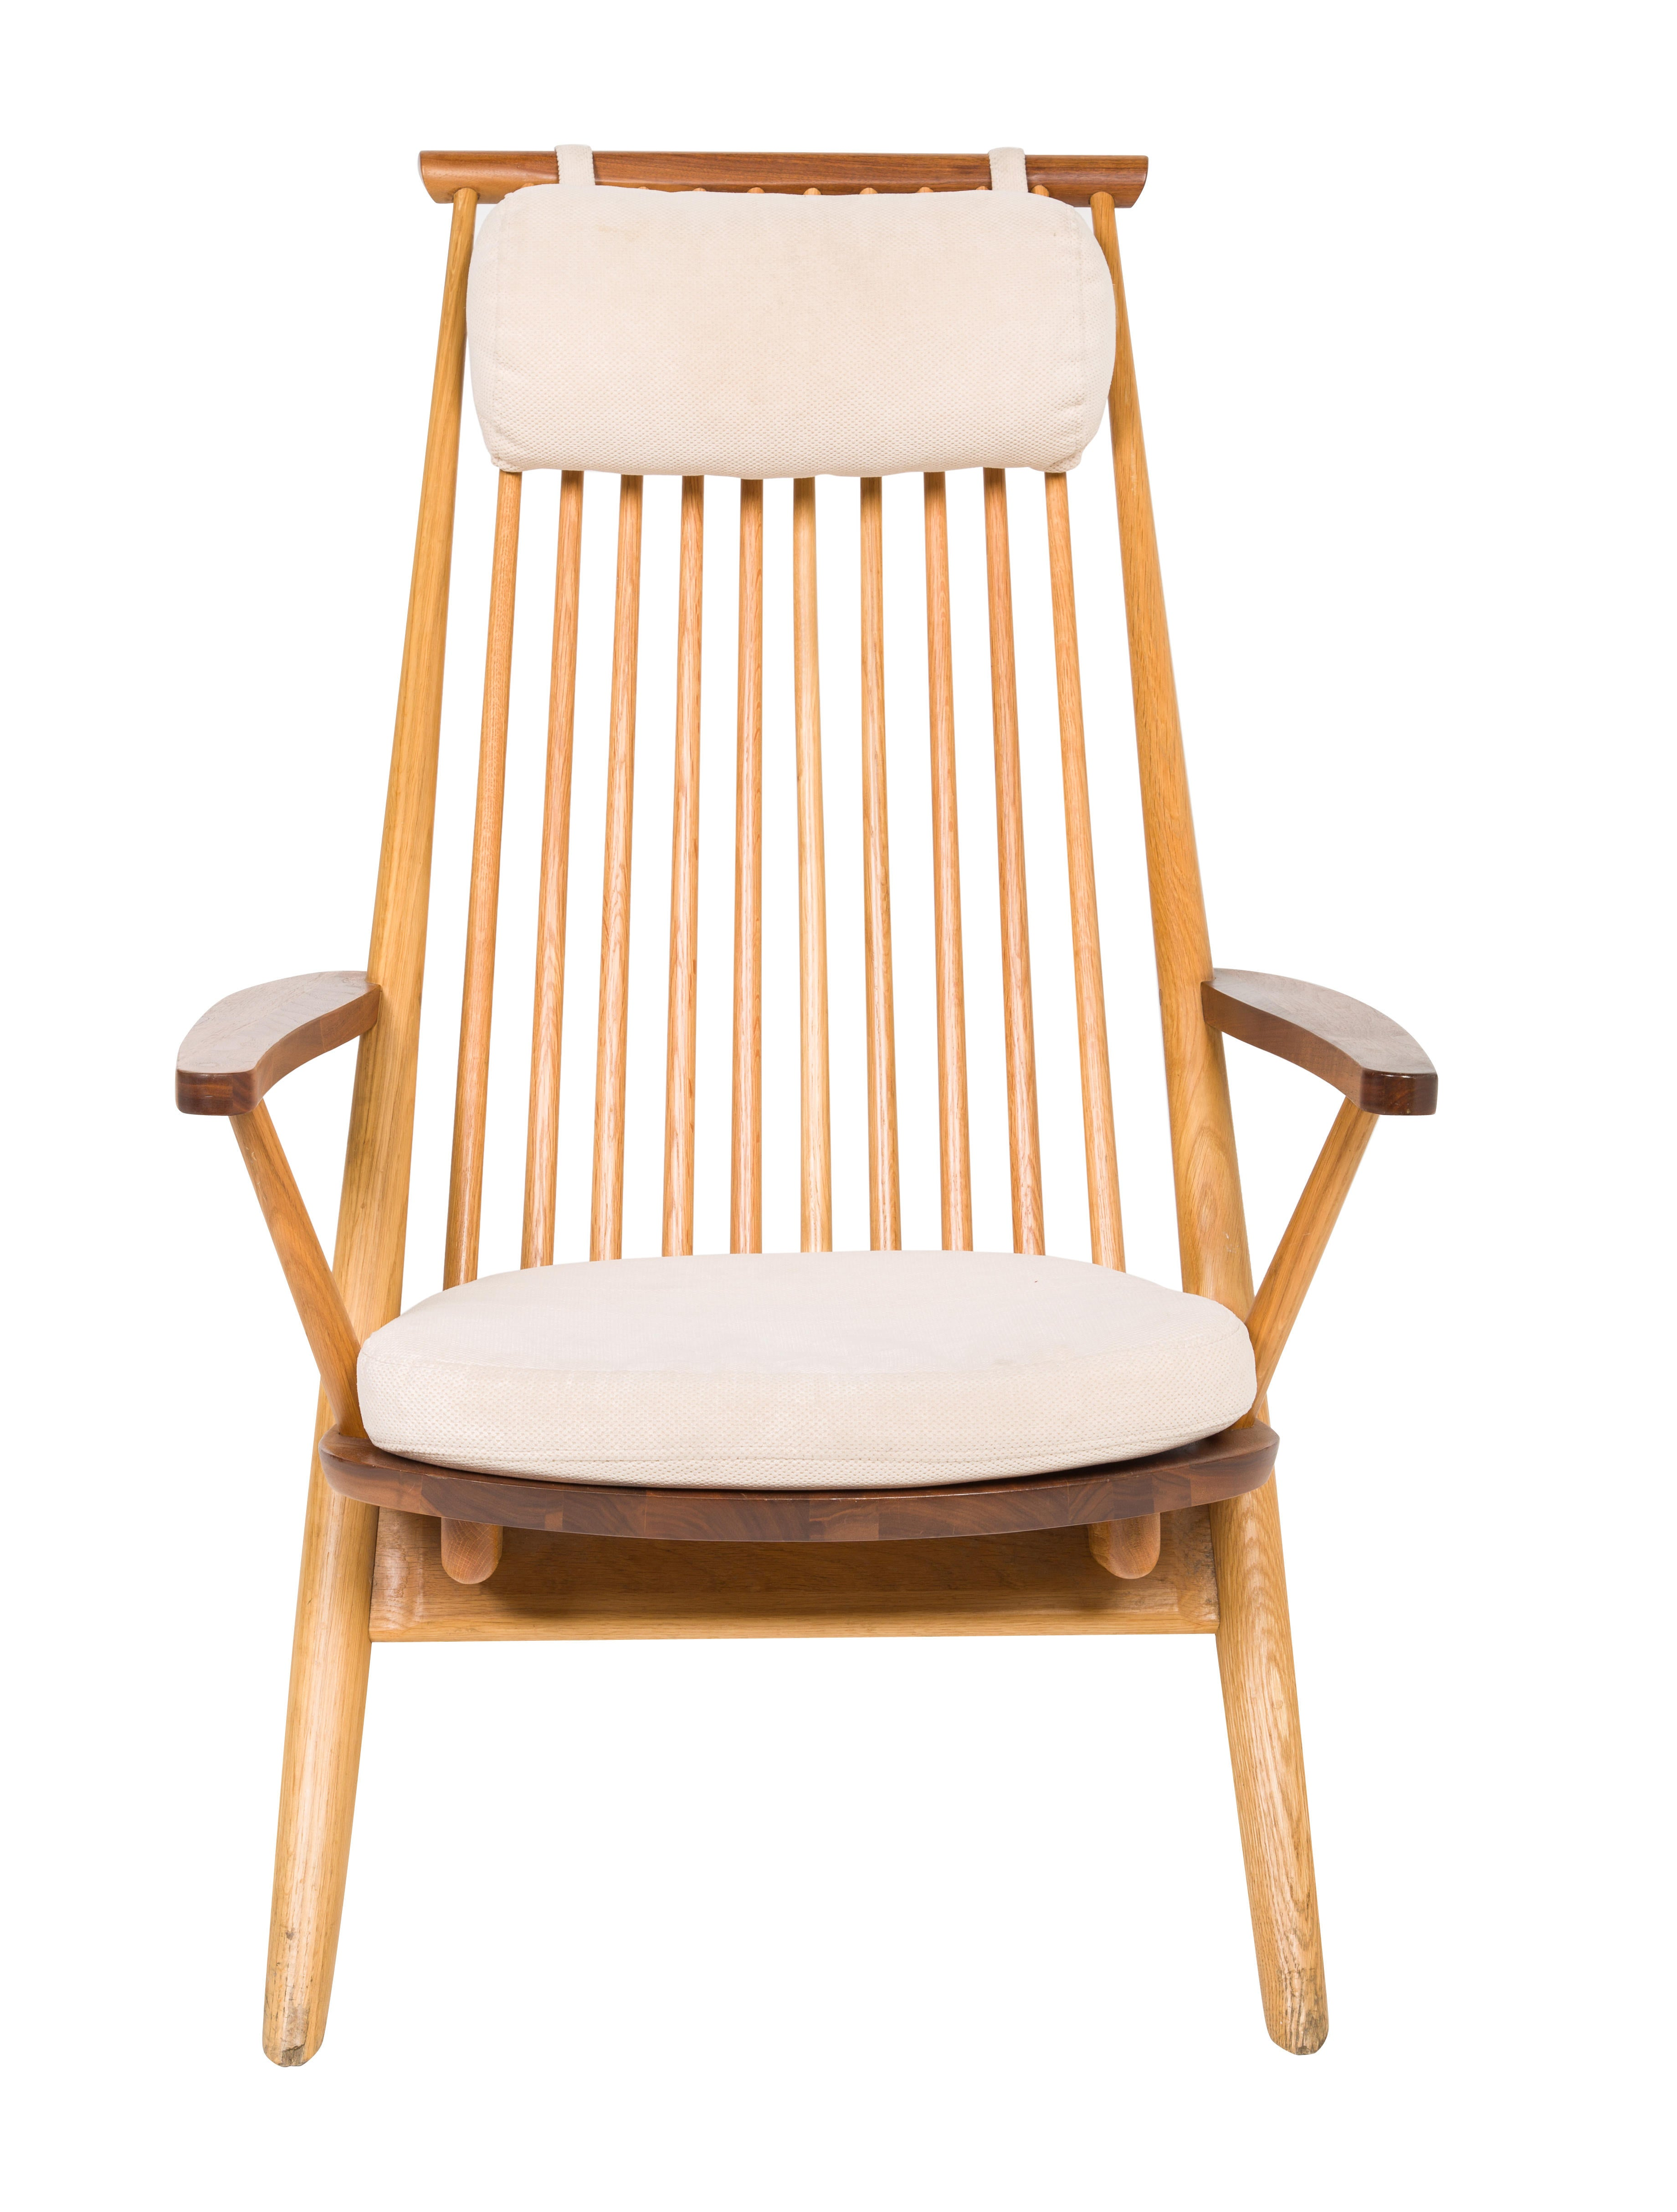 Danish Lounge Chair - Furniture - CHAIR20429   The RealReal